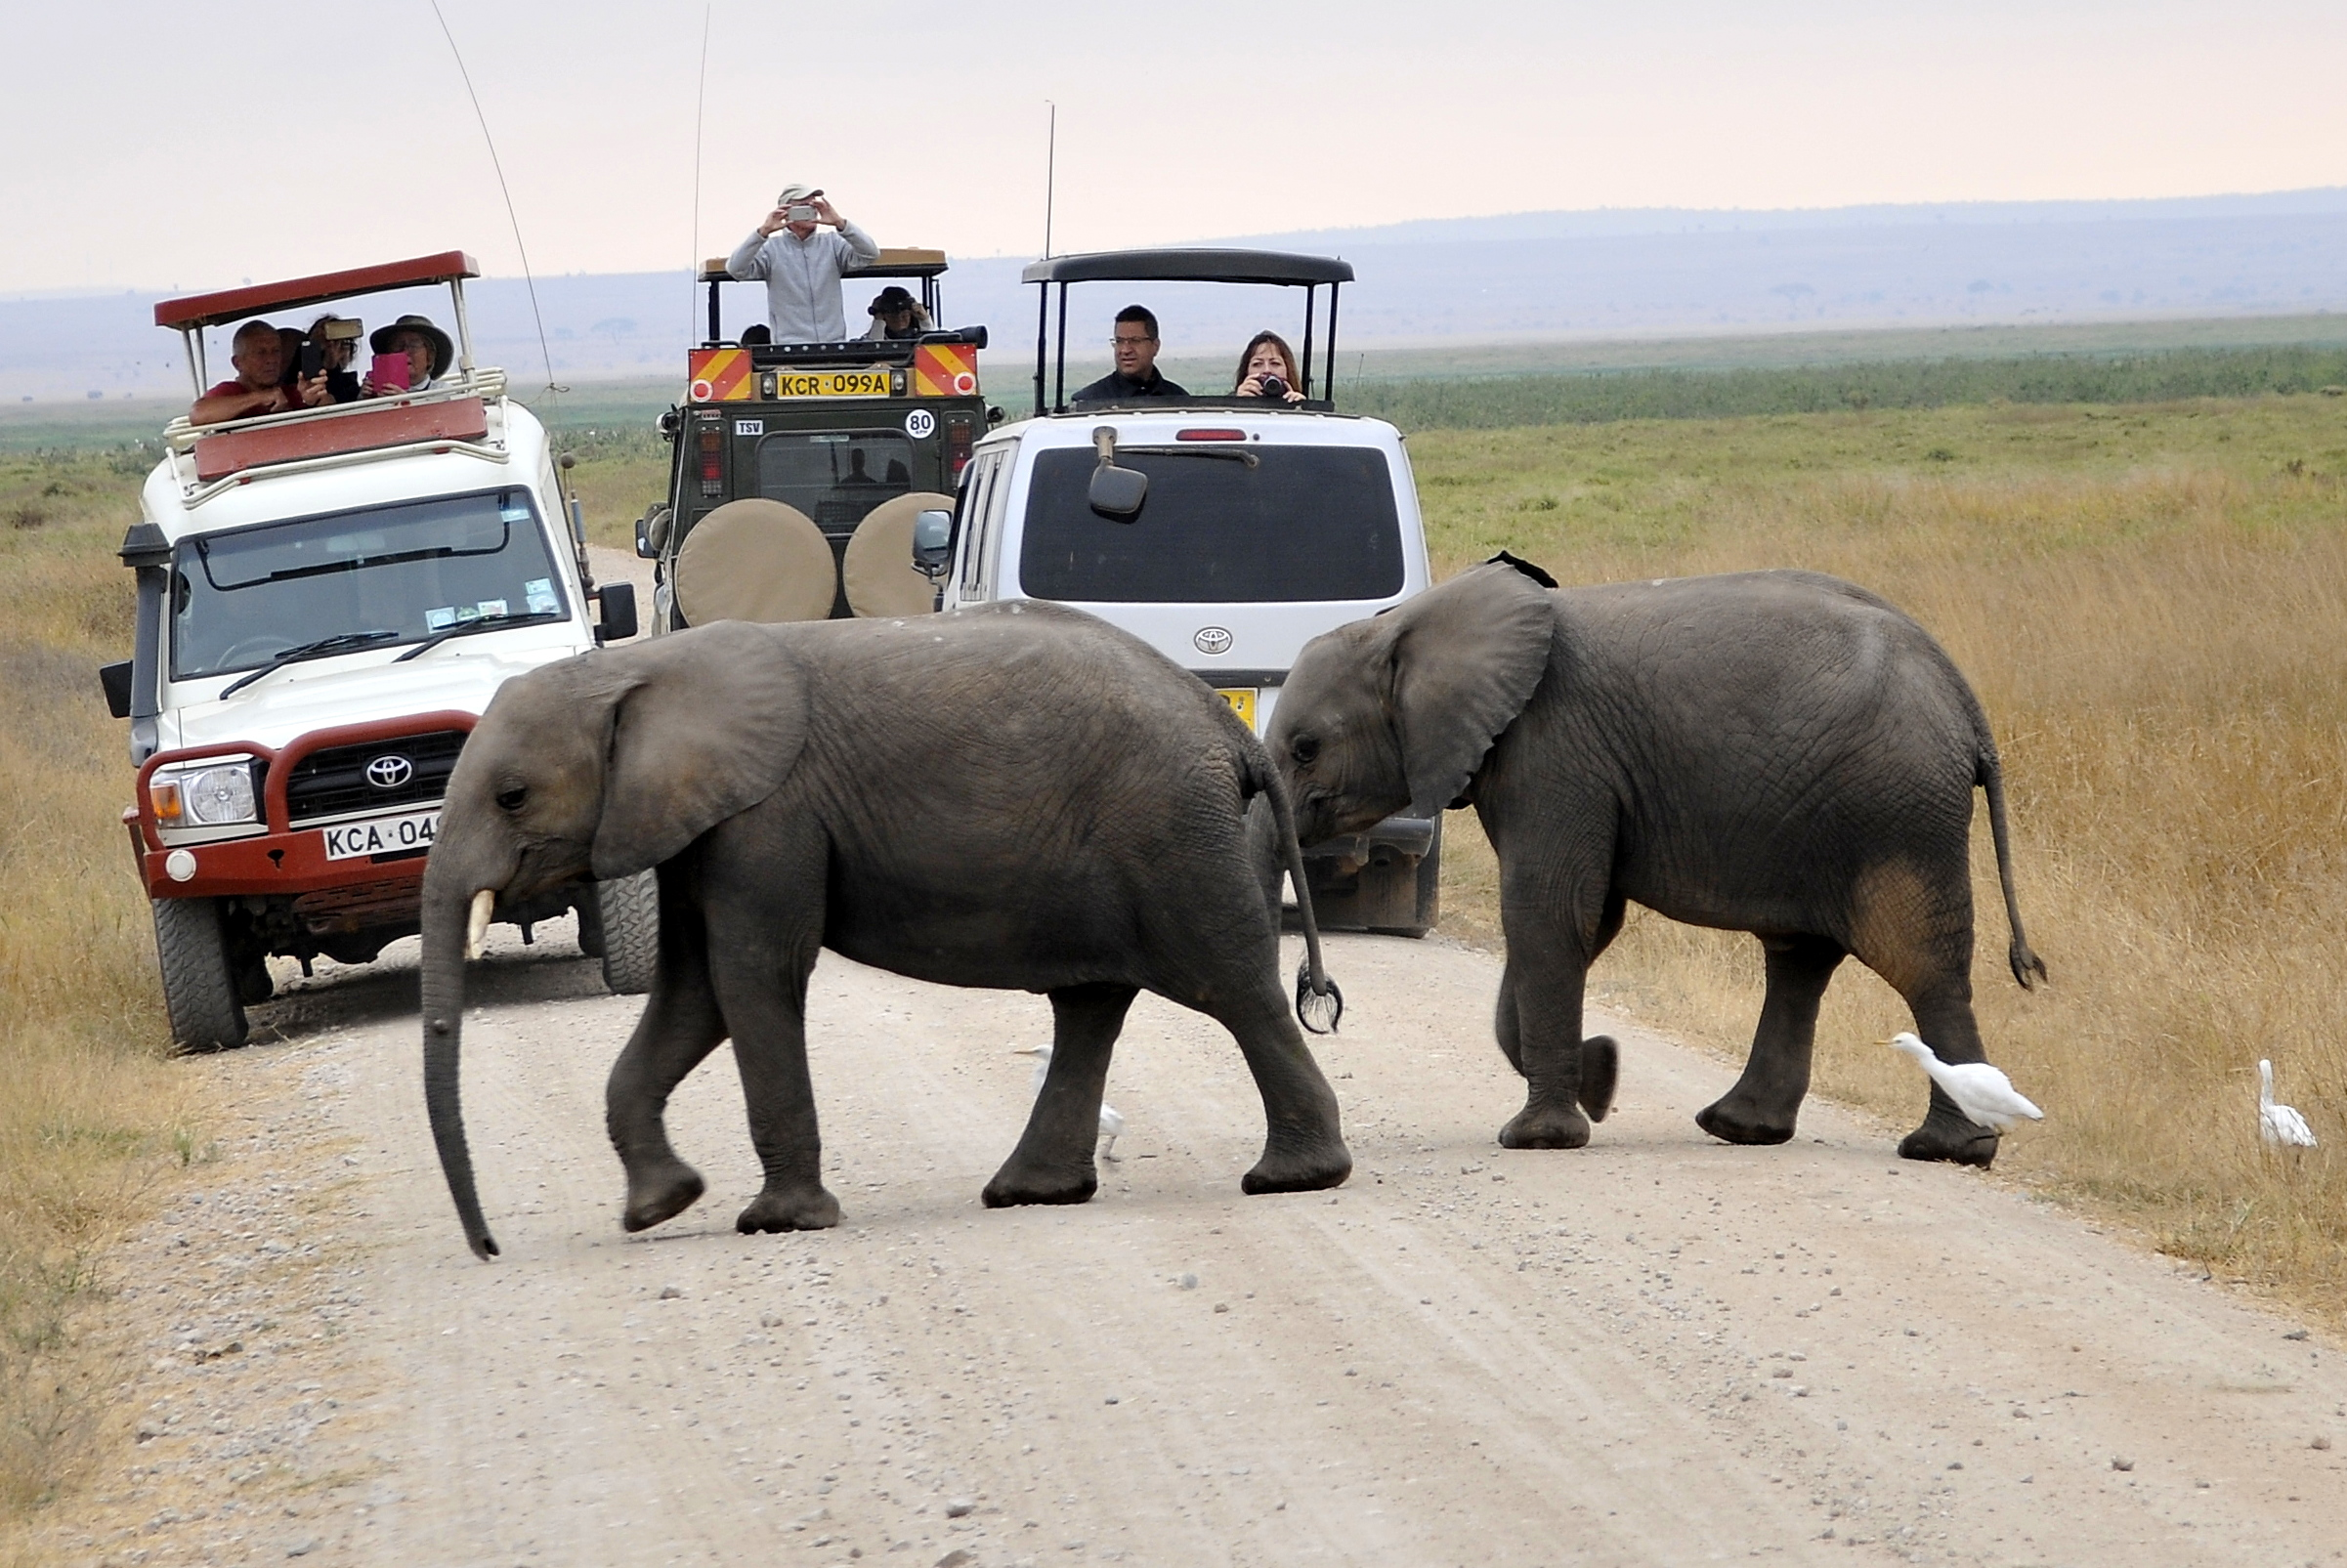 Gmae drives in Amboseli national park